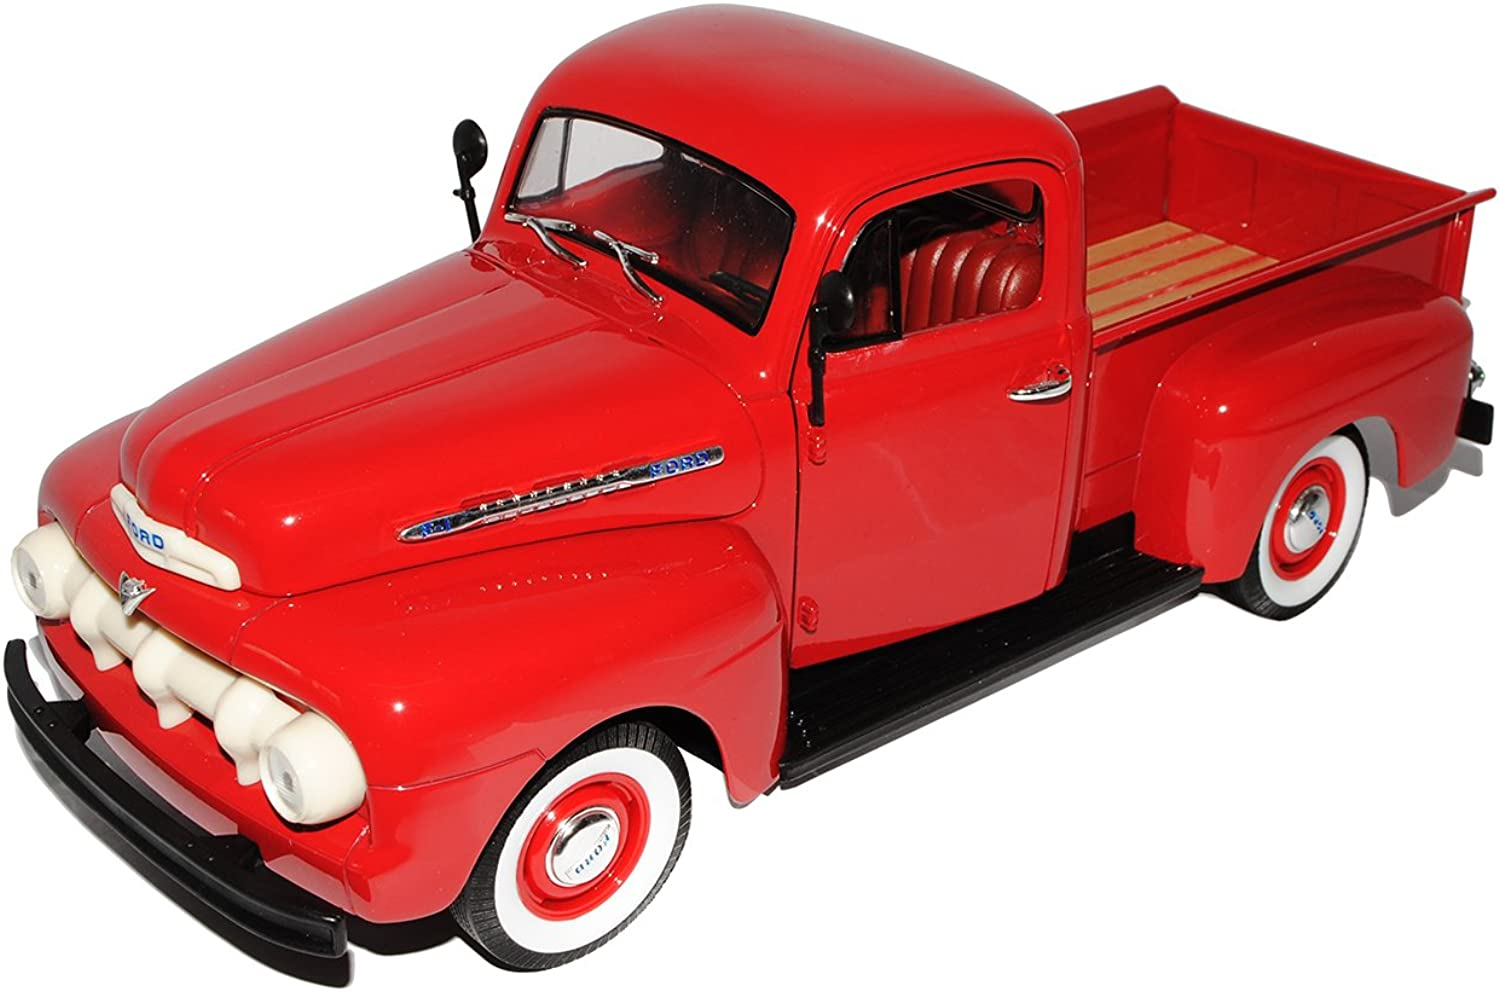 Ford F-1 F1 Pick-up 1951 Rot 1 18 Welly Modellauto Modell Auto B0055P1SVU Angemessener Preis  | Discount